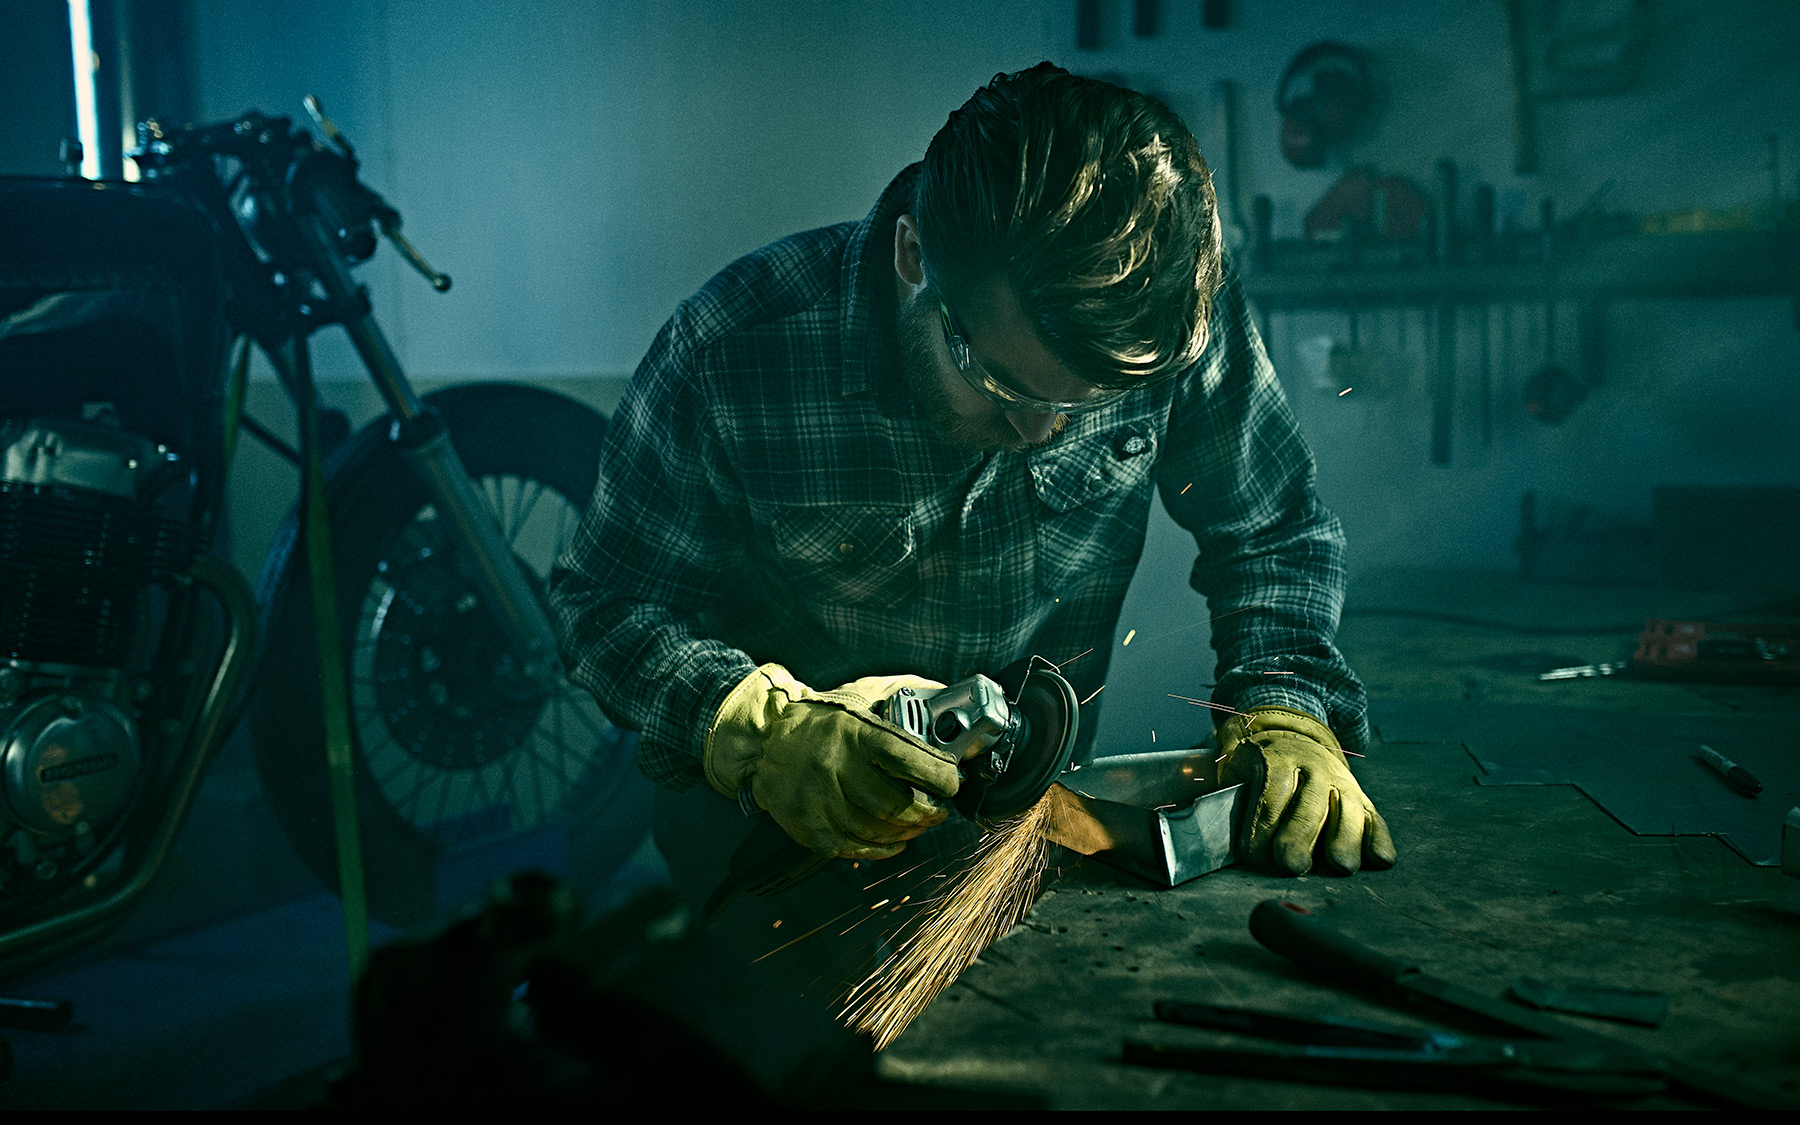 Working with the angle grinder at this craftsman photoshoot